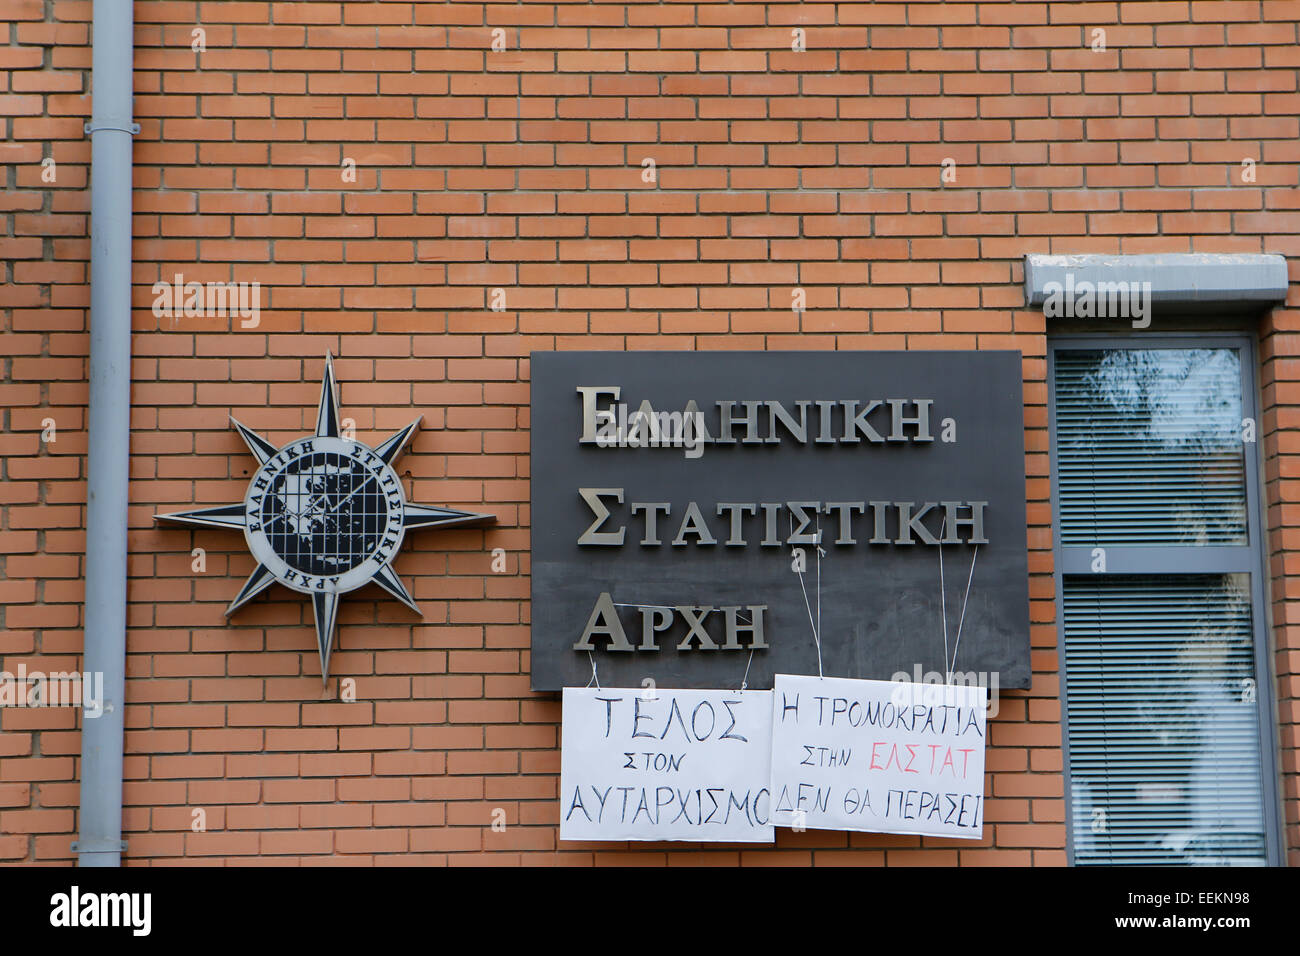 Protest posters hang on the official sign of the Hellenic Statistical Authority, reading 'End to Authoritarianism' - Stock Image